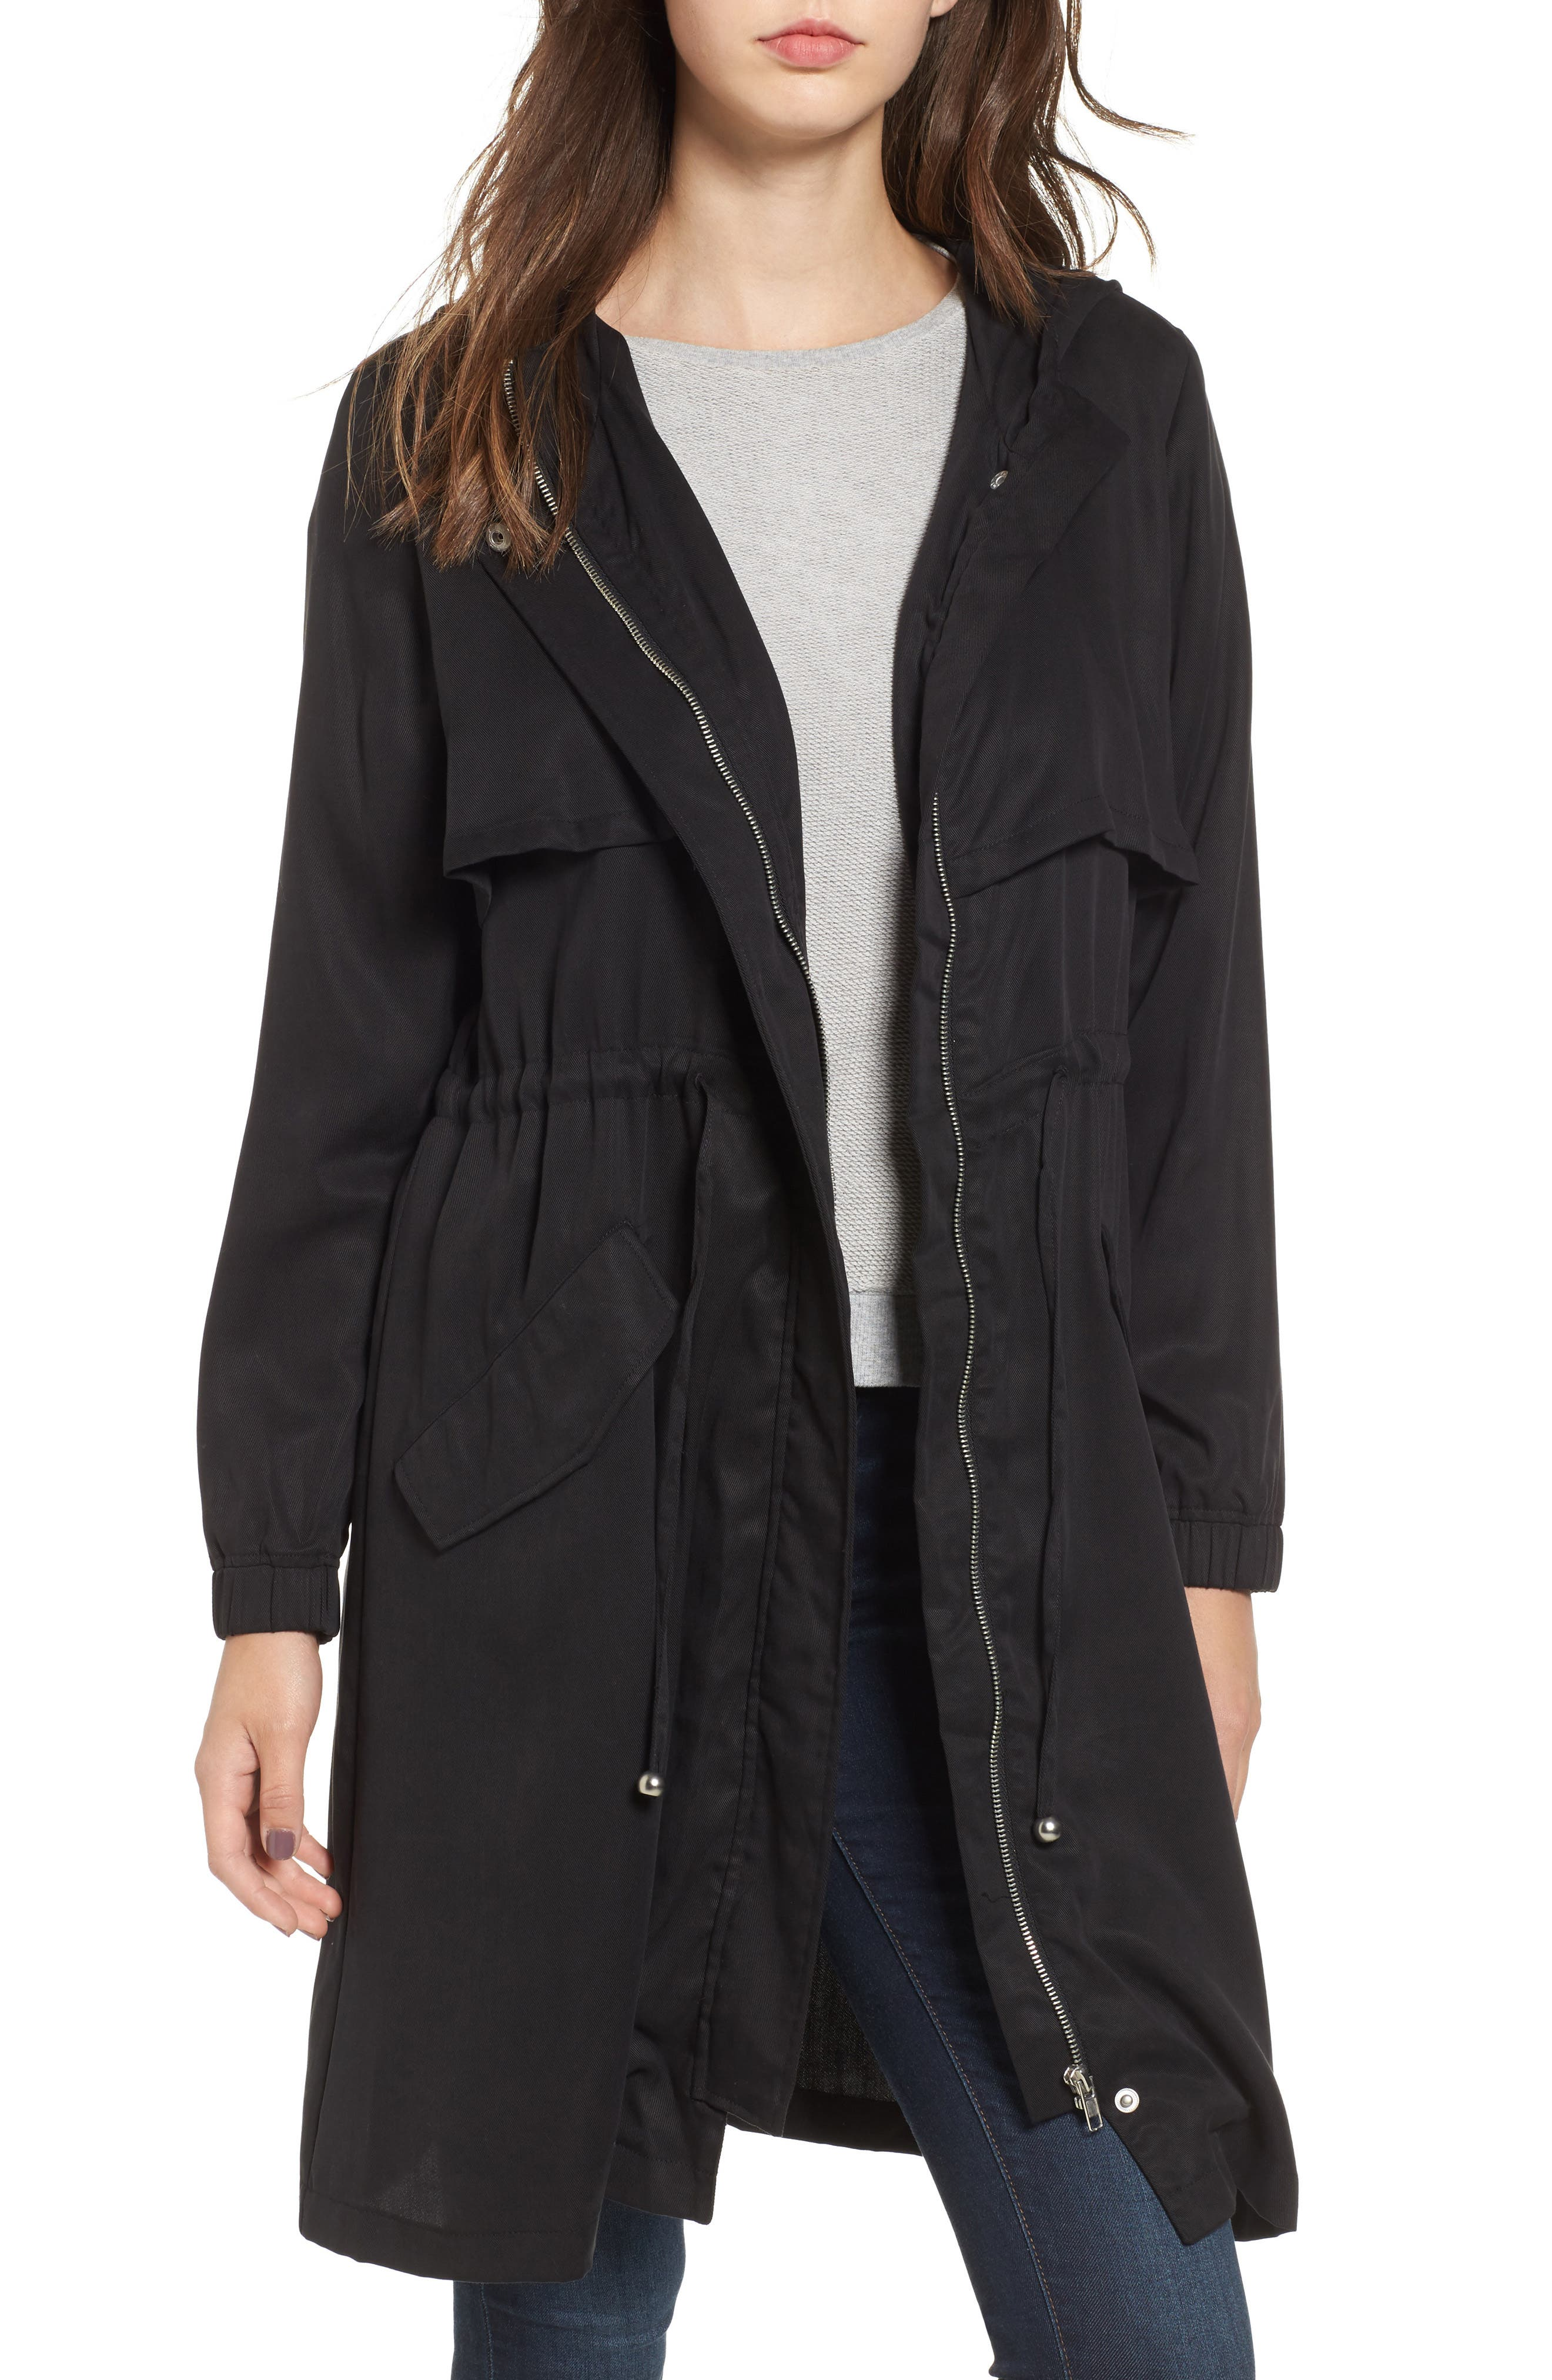 Tyler Hooded Trench Coat,                             Main thumbnail 1, color,                             001